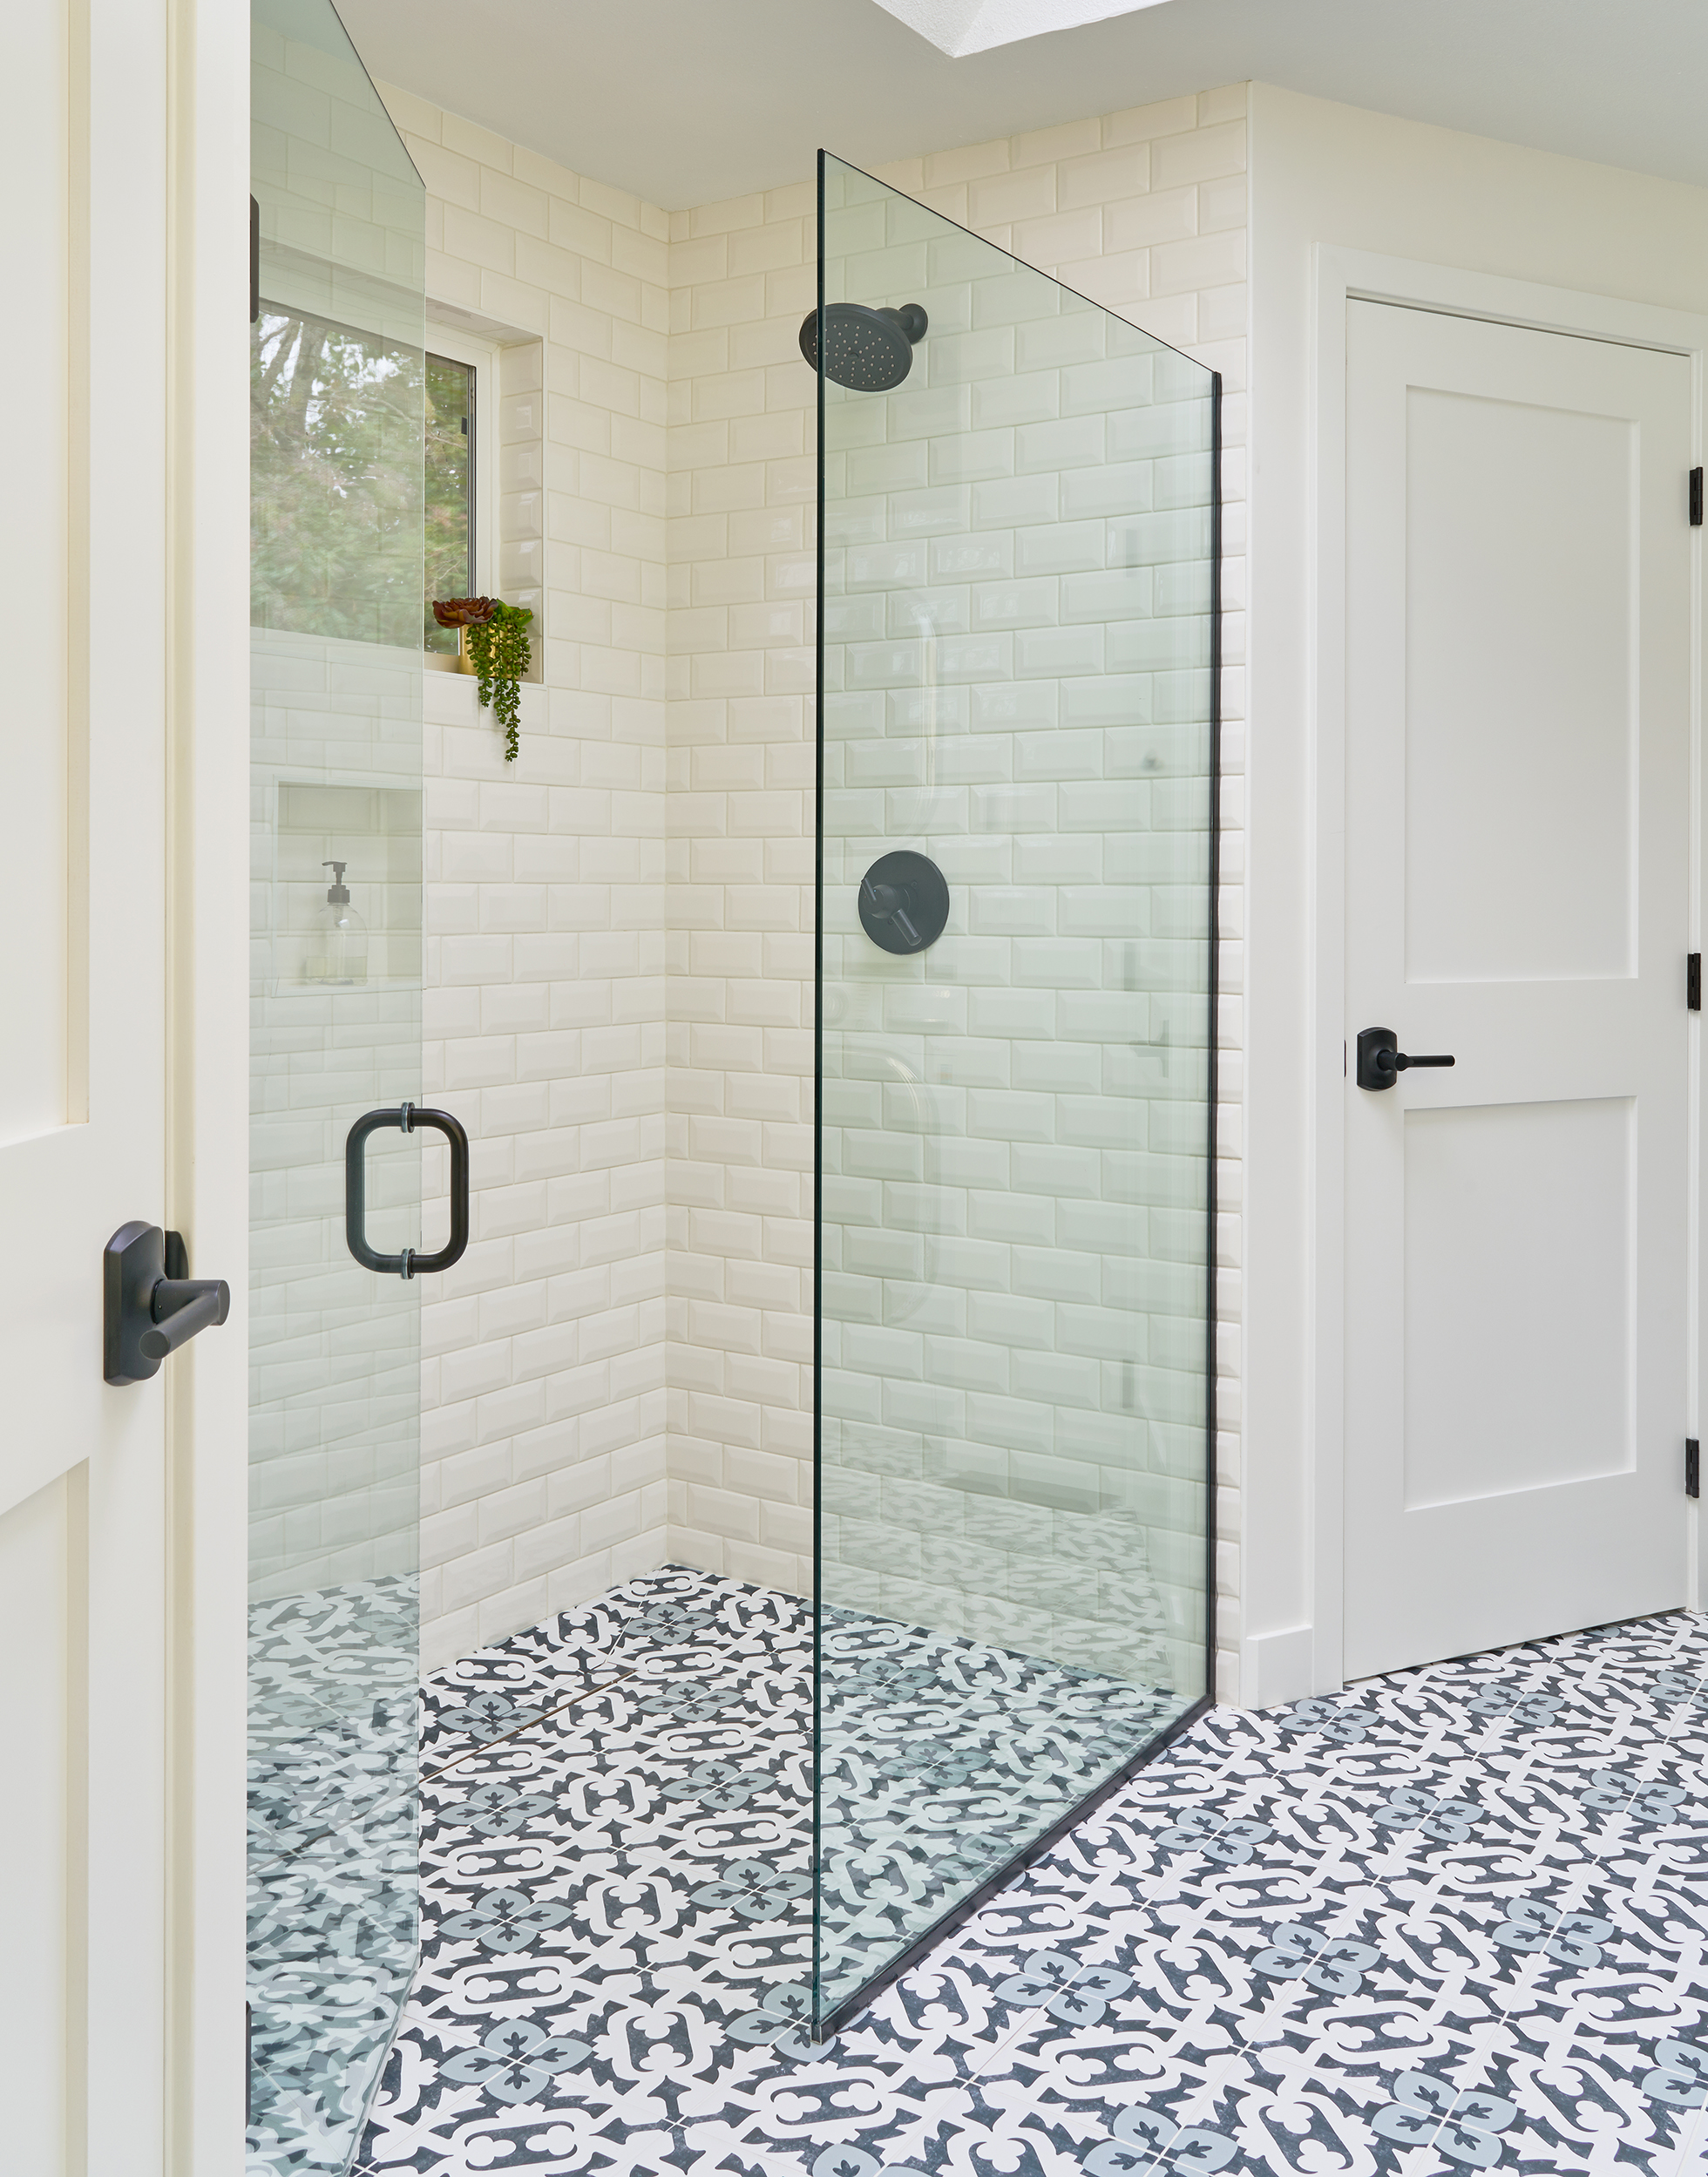 Tile bathroom with curb-less shower and lever door handles